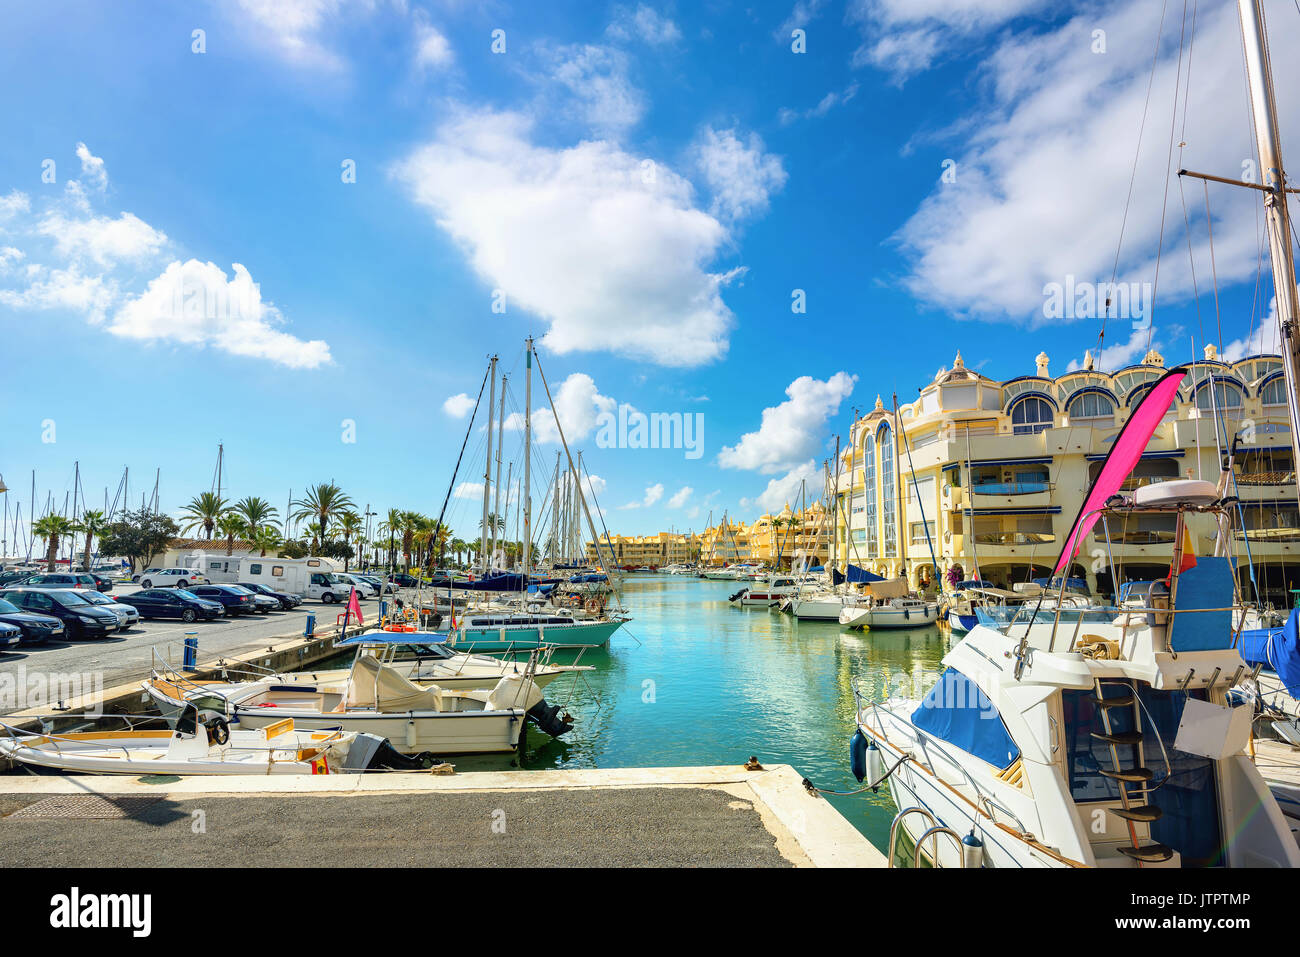 View of harbour Puerto Marina in Benalmadena. Costa del Sol, Malaga province, Andalusia, Spain Stock Photo